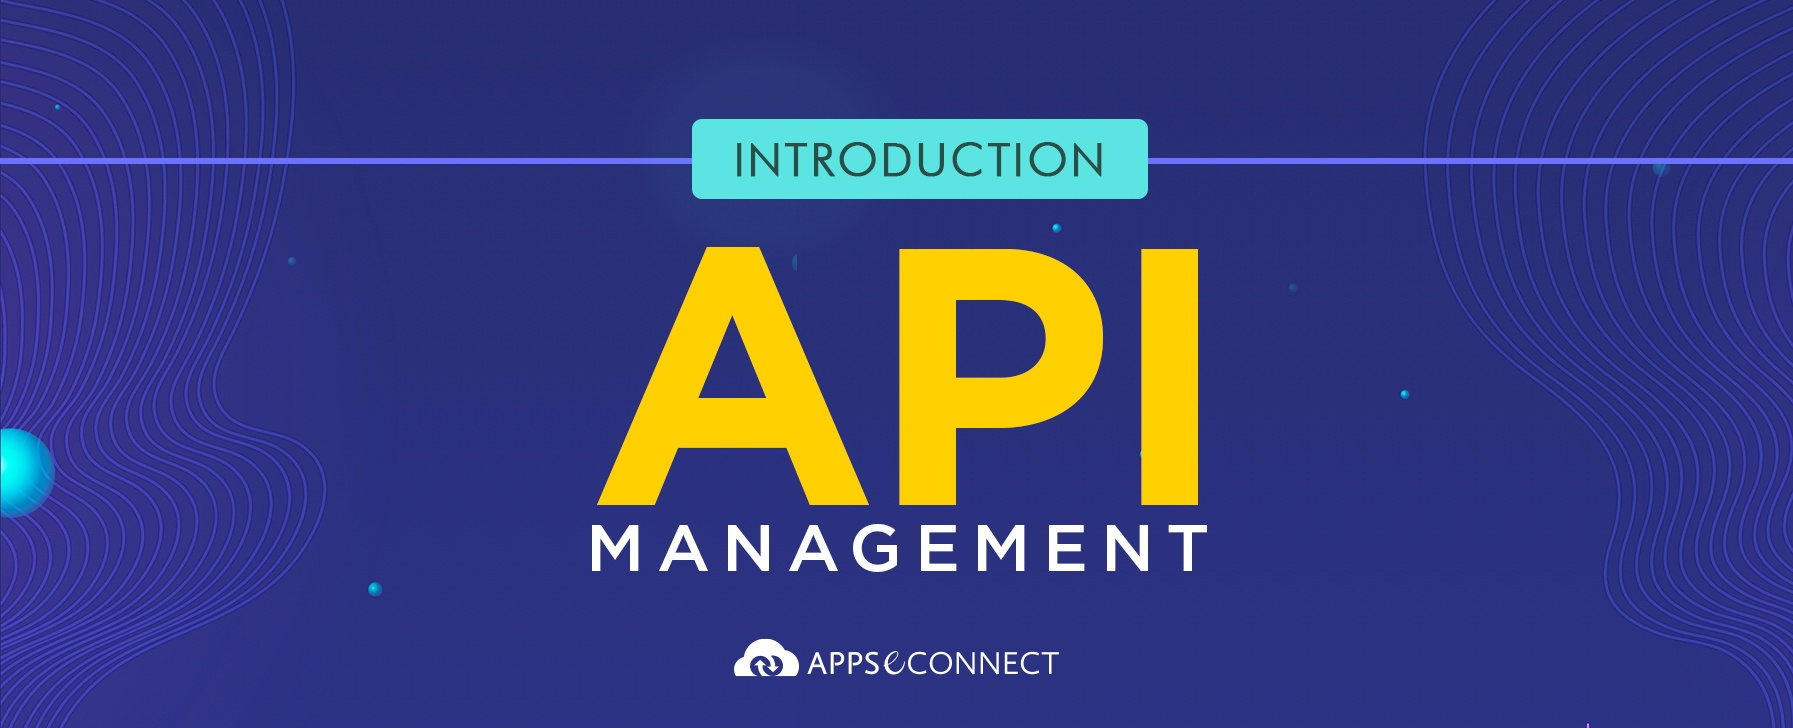 Introduction-to-API-Management-with-APPSeCONNECT